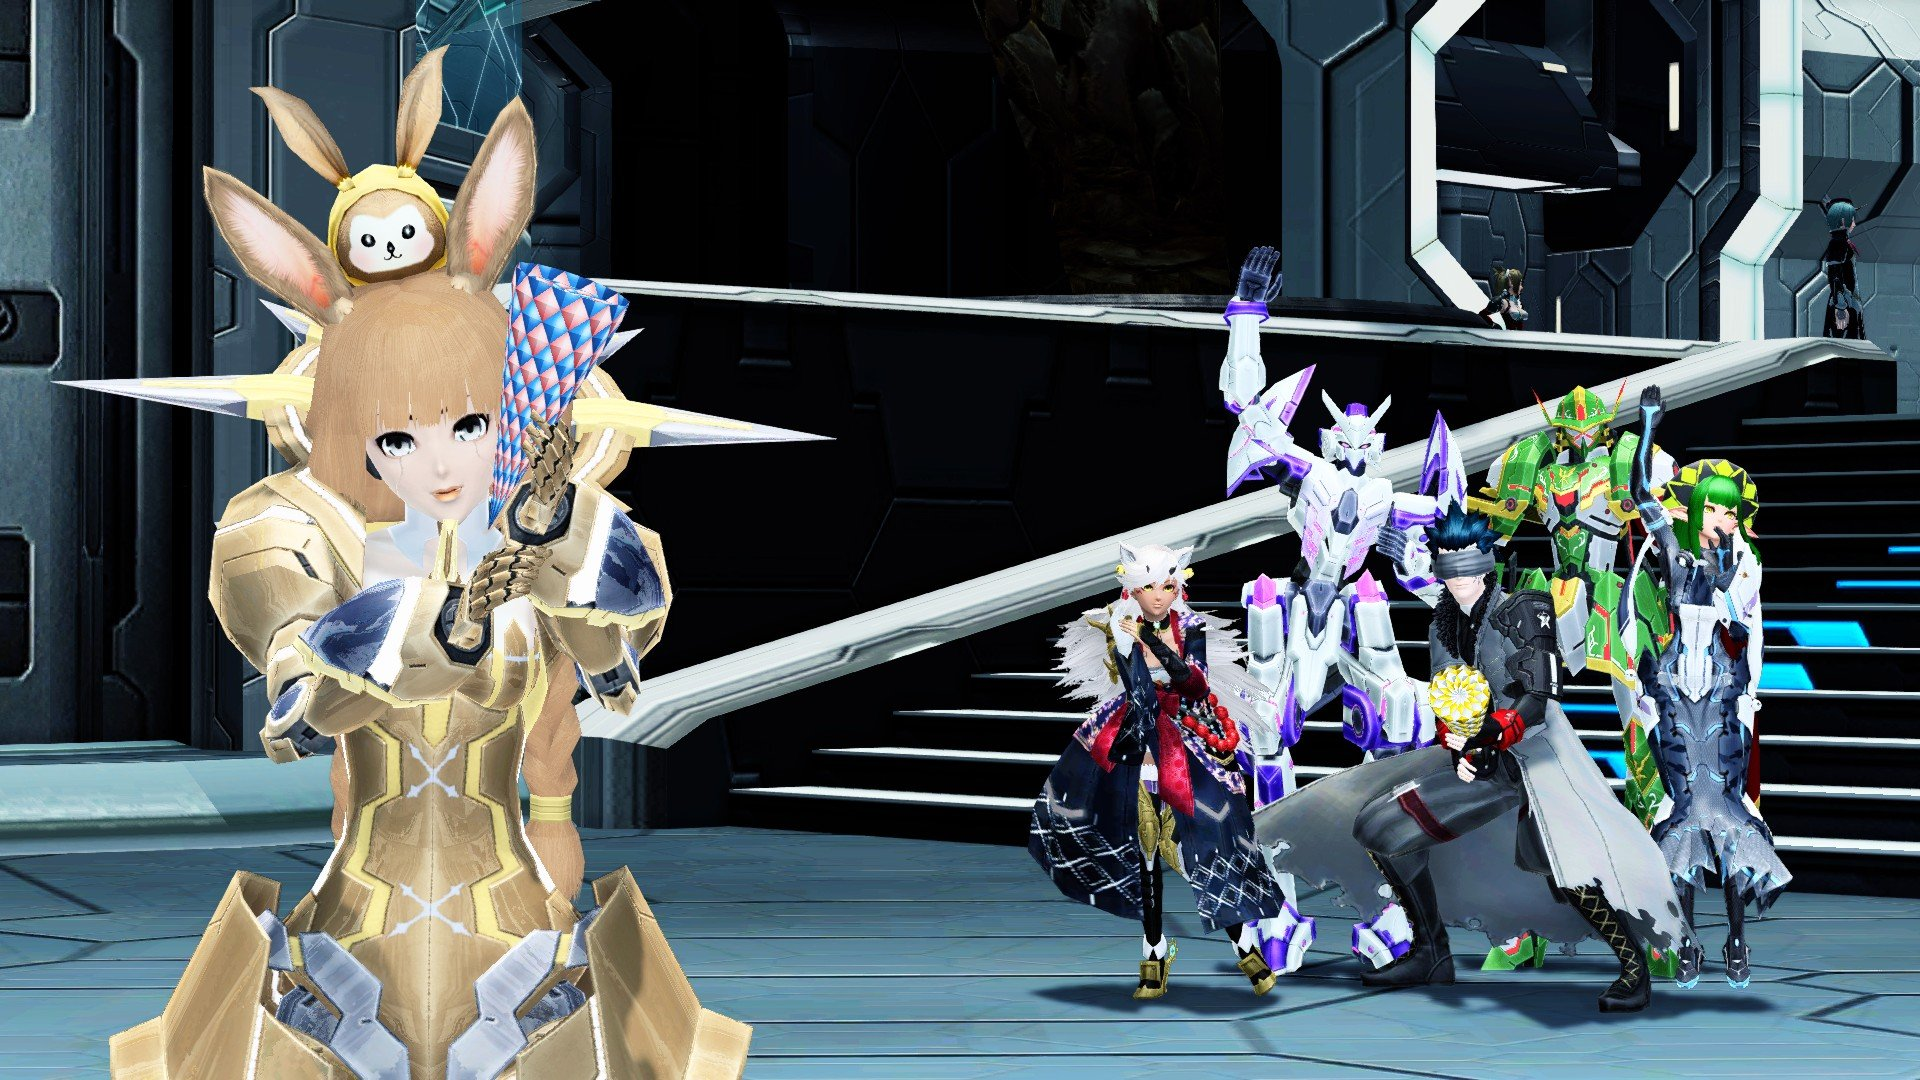 Sega announces that the western launch of Phantasy Star Online 2 has pushed the game past one million users screenshot